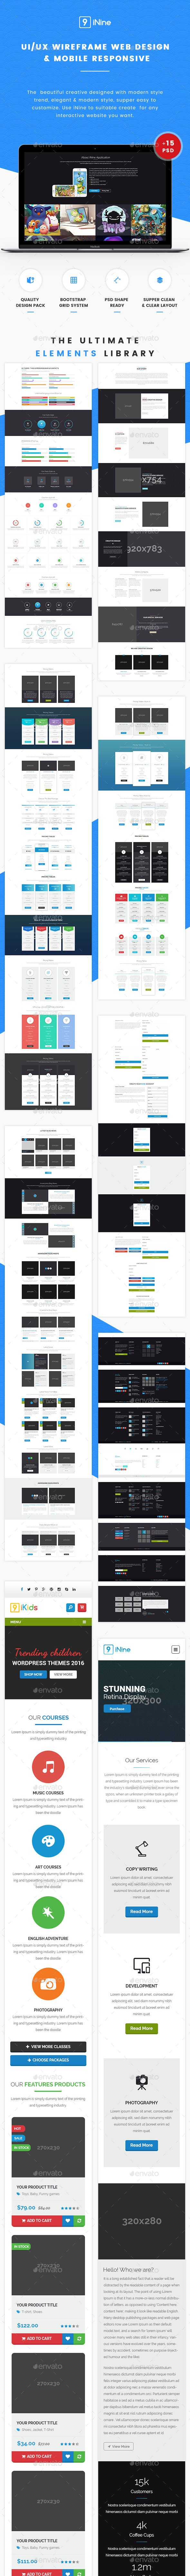 UI/UX Wireframe Web Design & Mobile Responsive - User Interfaces Web Elements